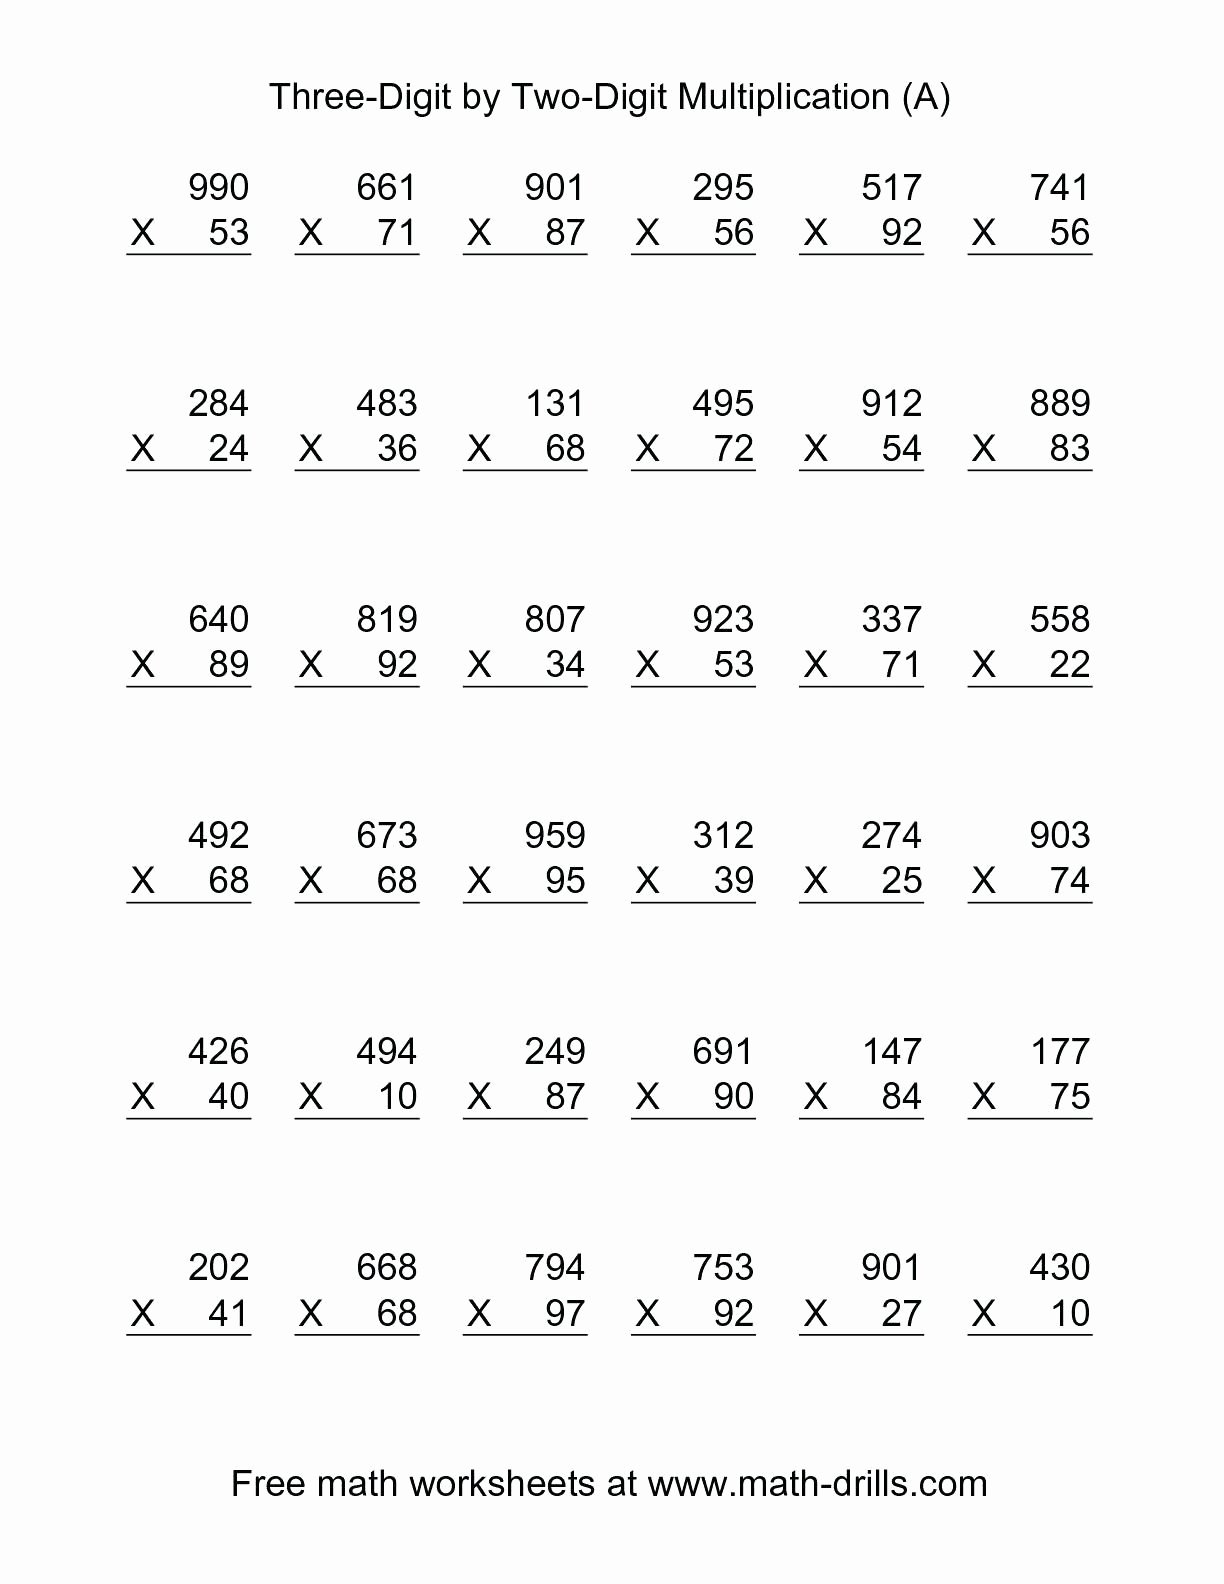 5th Grade Multiplication Worksheets Printable Fresh 5th Grade Multiplication Worksheets for Printable In 2020